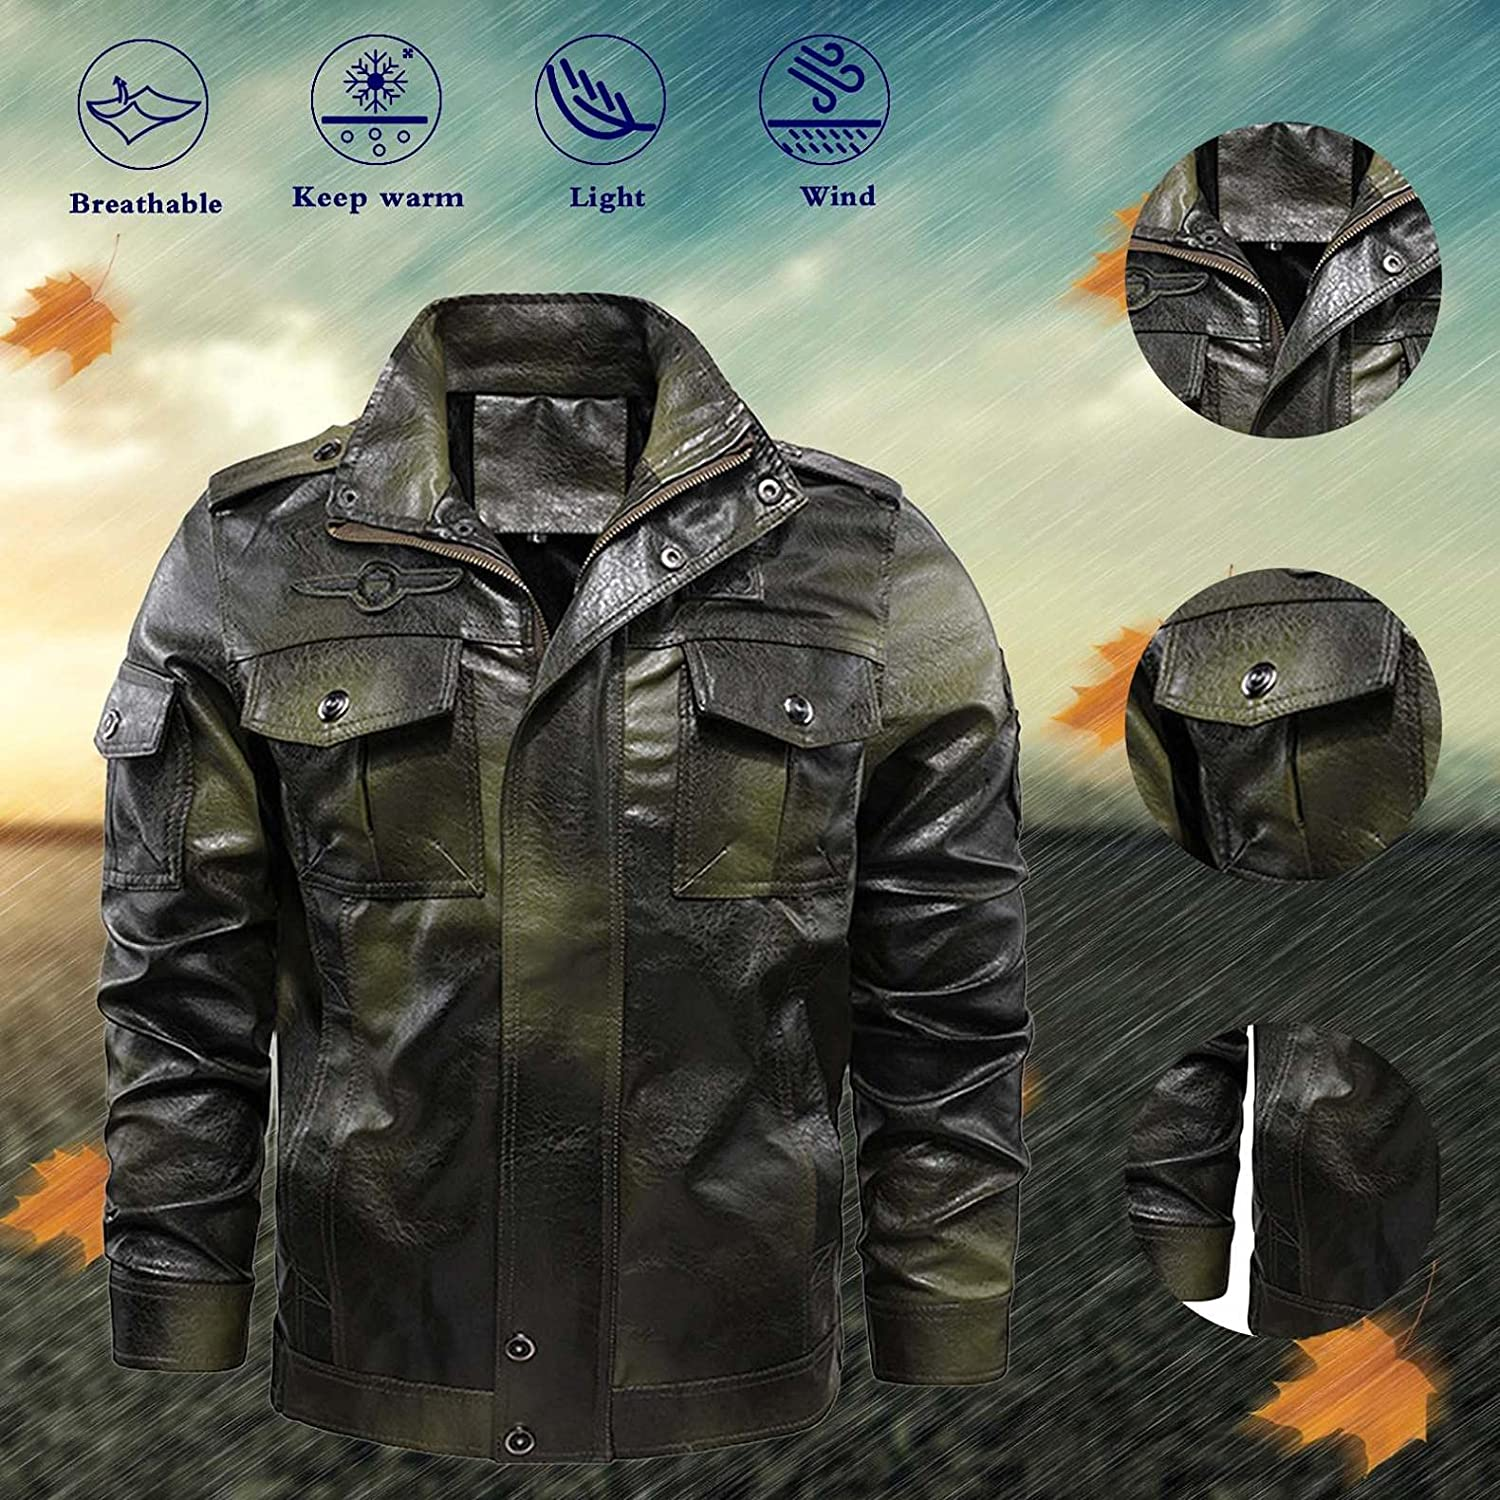 PHSHY Mens Vintage Faux Leather Jacket Coat Motorcycle Bomber Jacket Casual Stand Collar Zip Up Lightweight Outwear